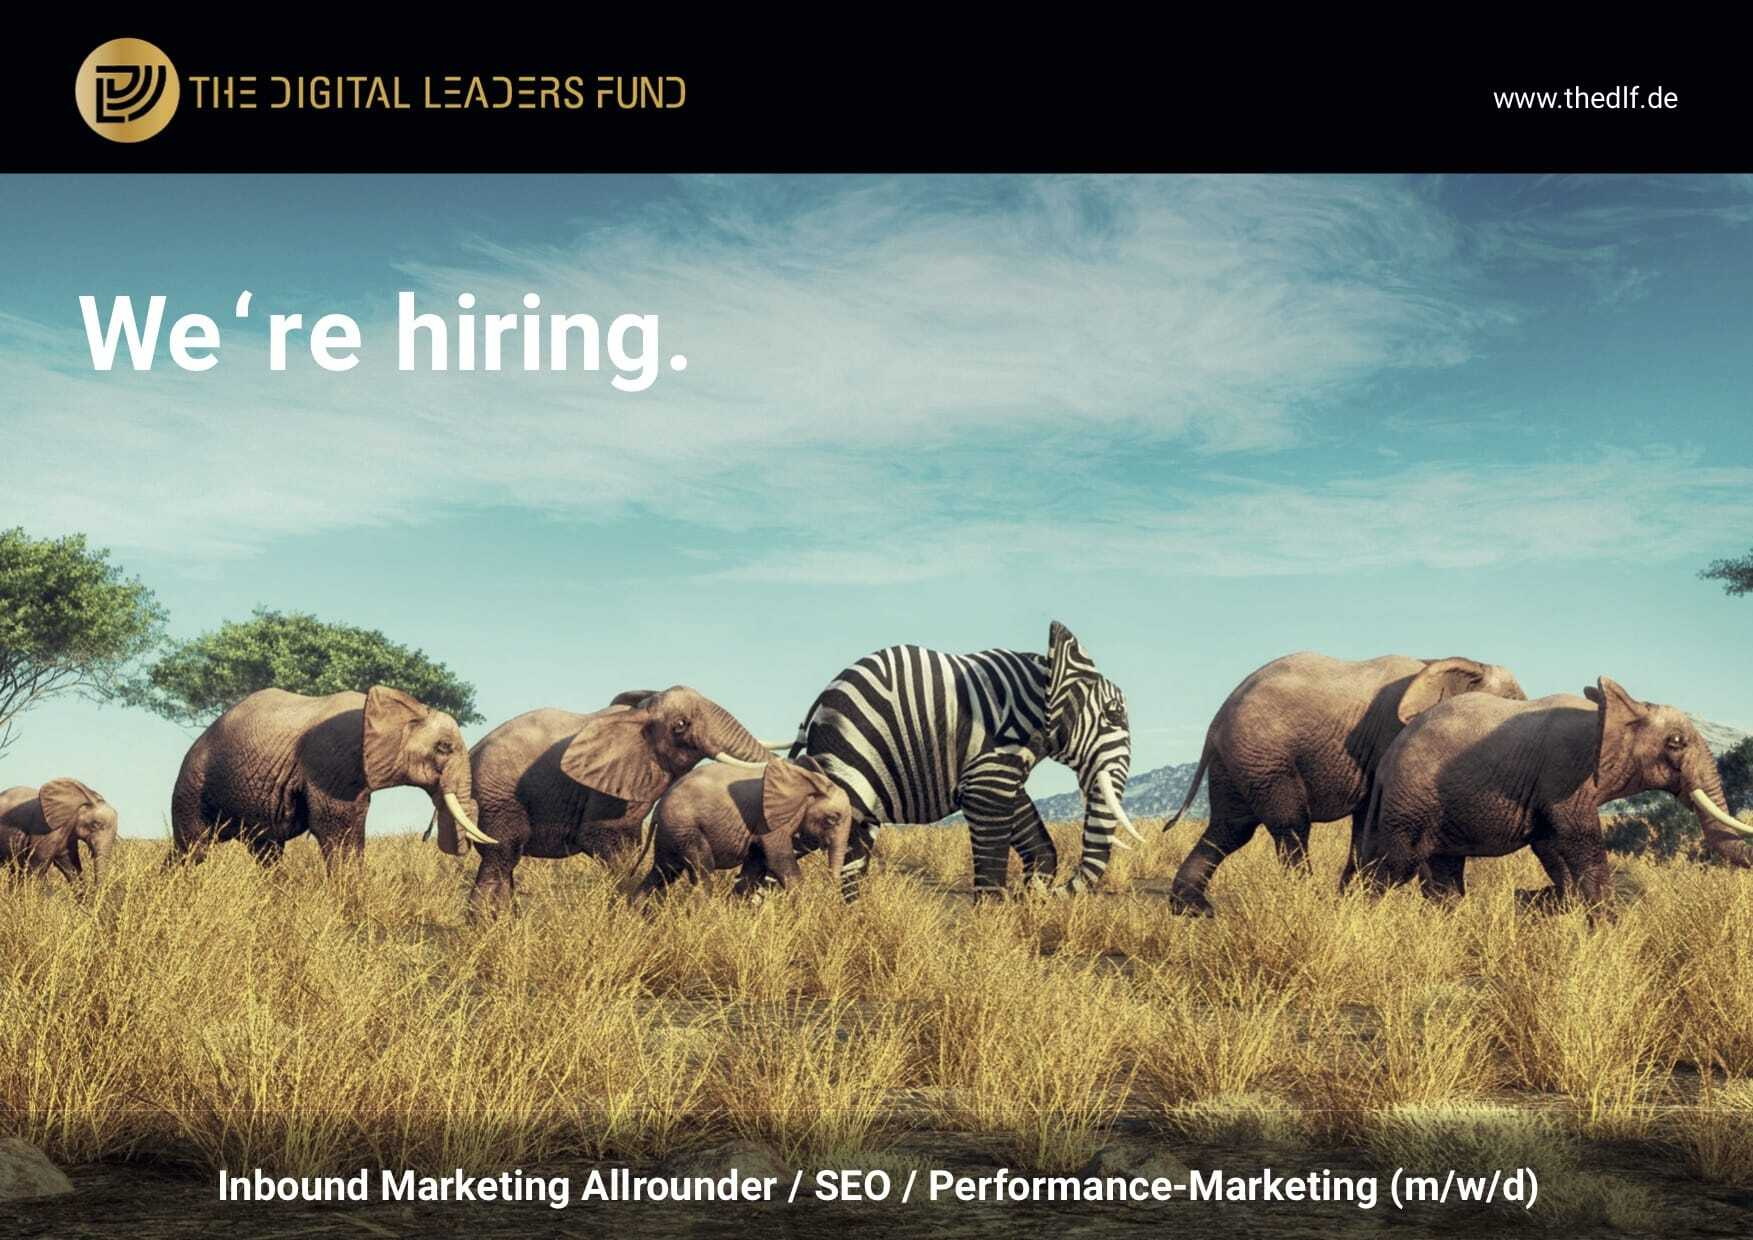 We're hiring: Inbound Marketing Allrounder